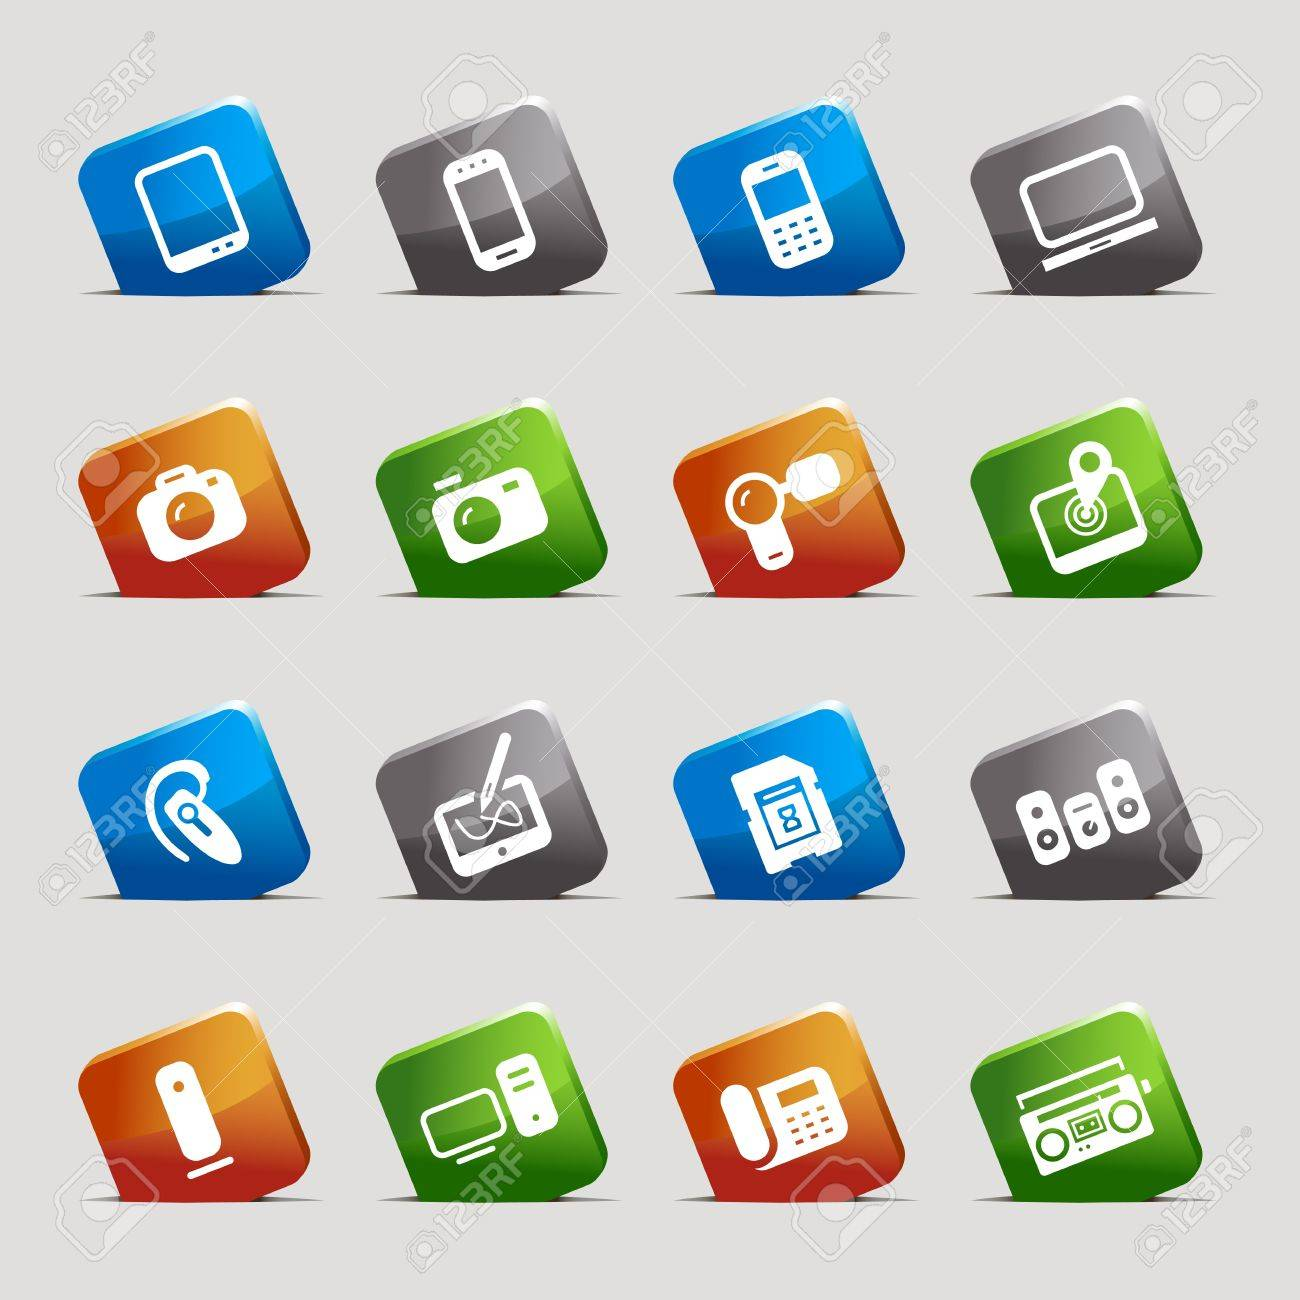 Cut Squares - Media Icons Stock Vector - 12488183